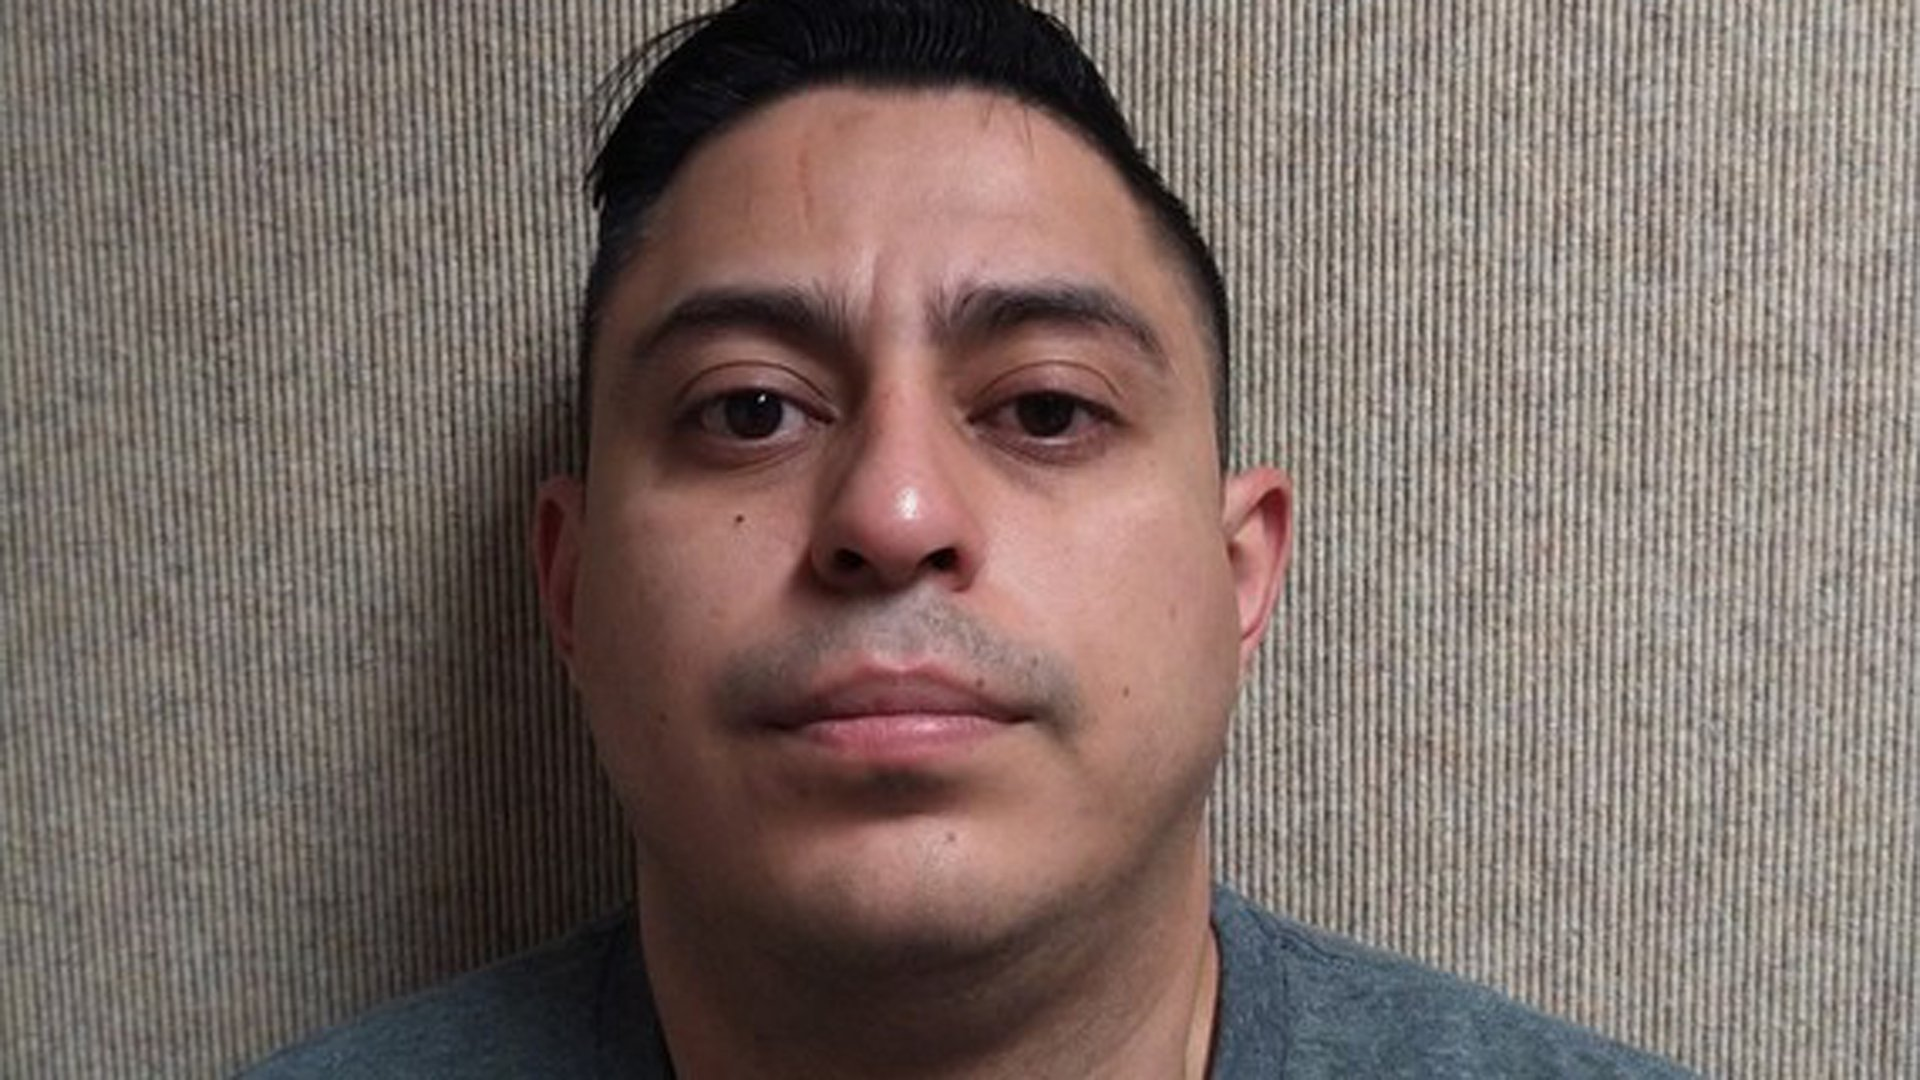 Alonso Calle is seen in a booking photo released by the Fontana Police Department on Jan. 12, 2020.